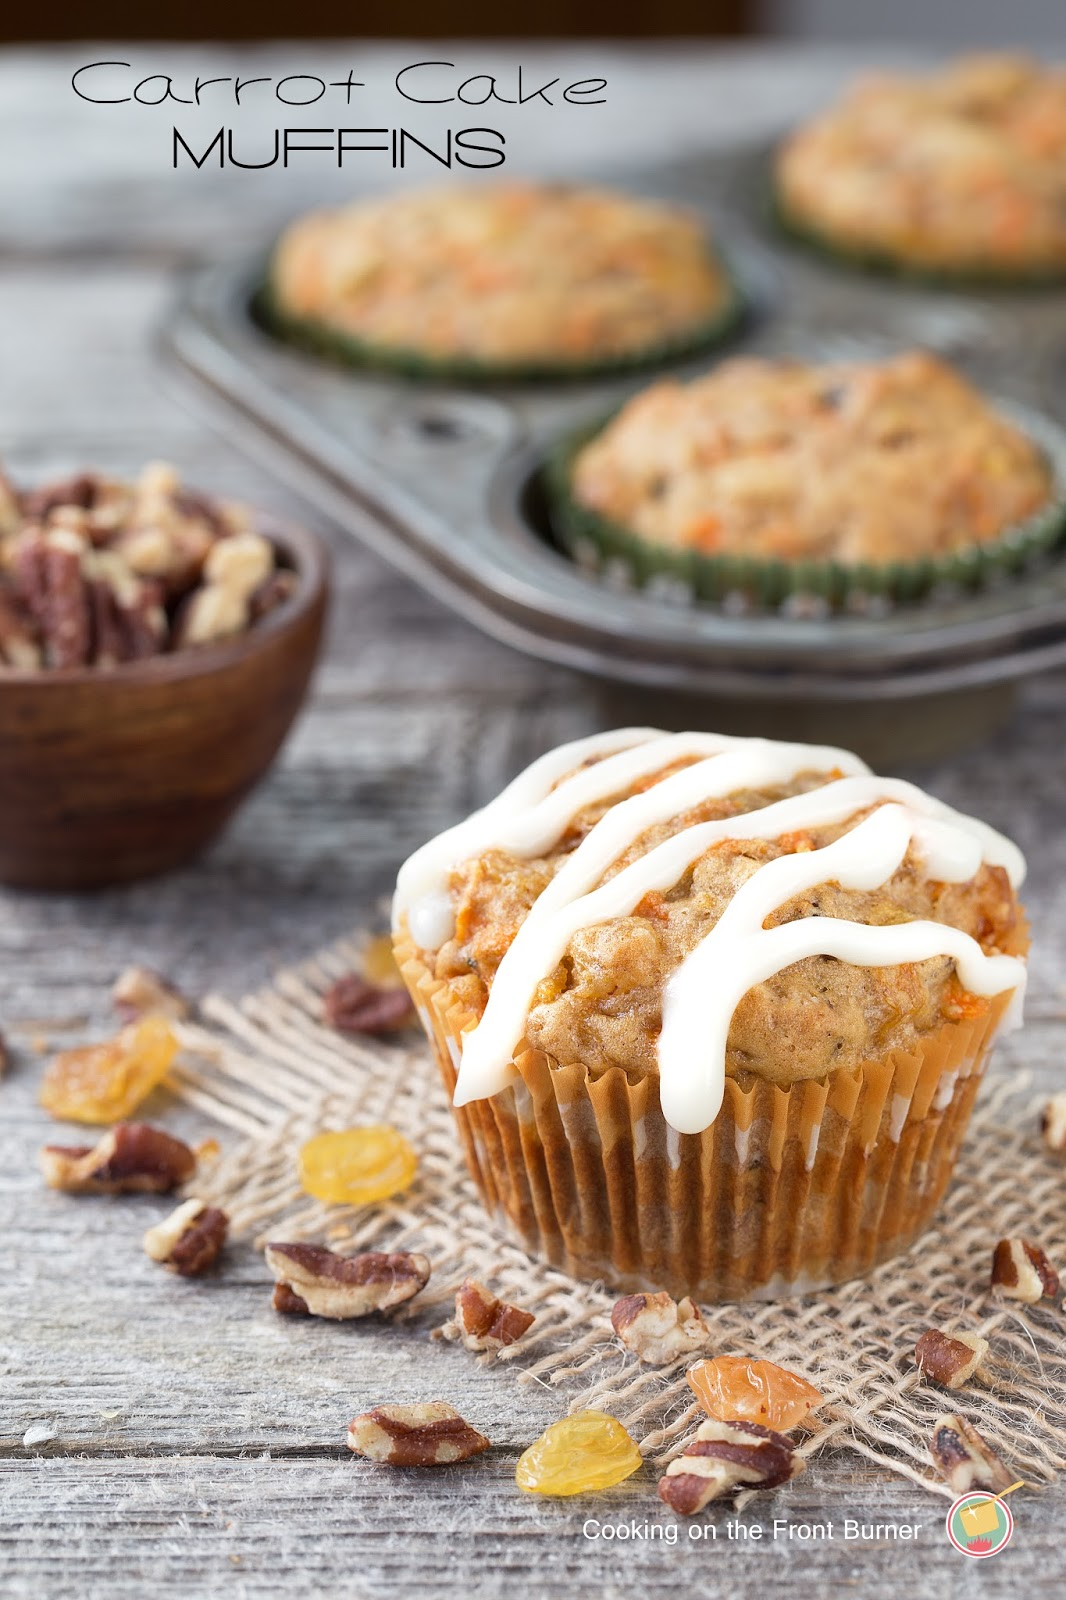 Carrot Cake Muffins with Crem Cheese Glaze